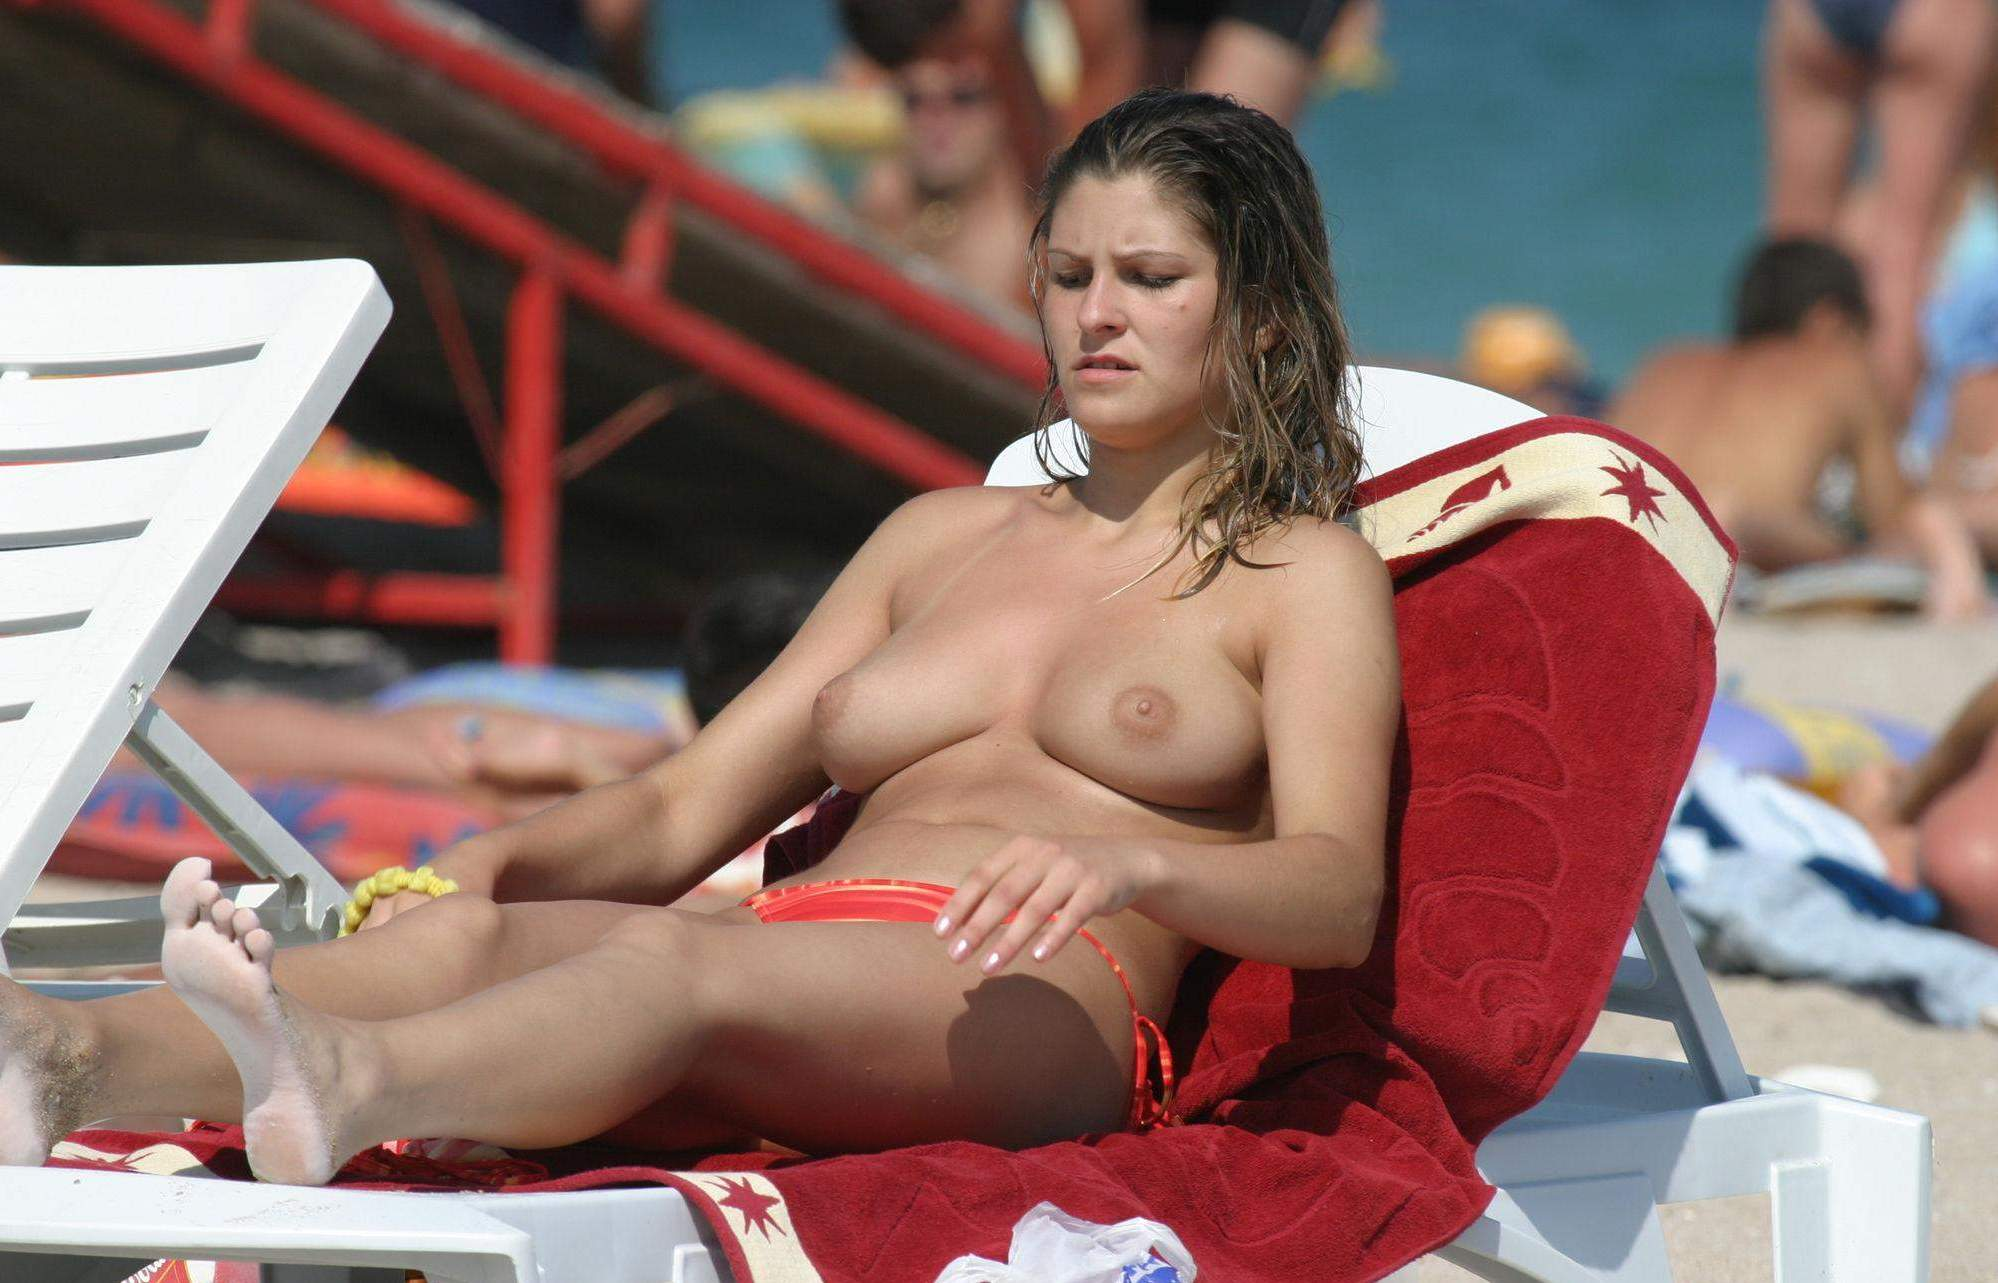 Topless girl enjoying the sunny beach